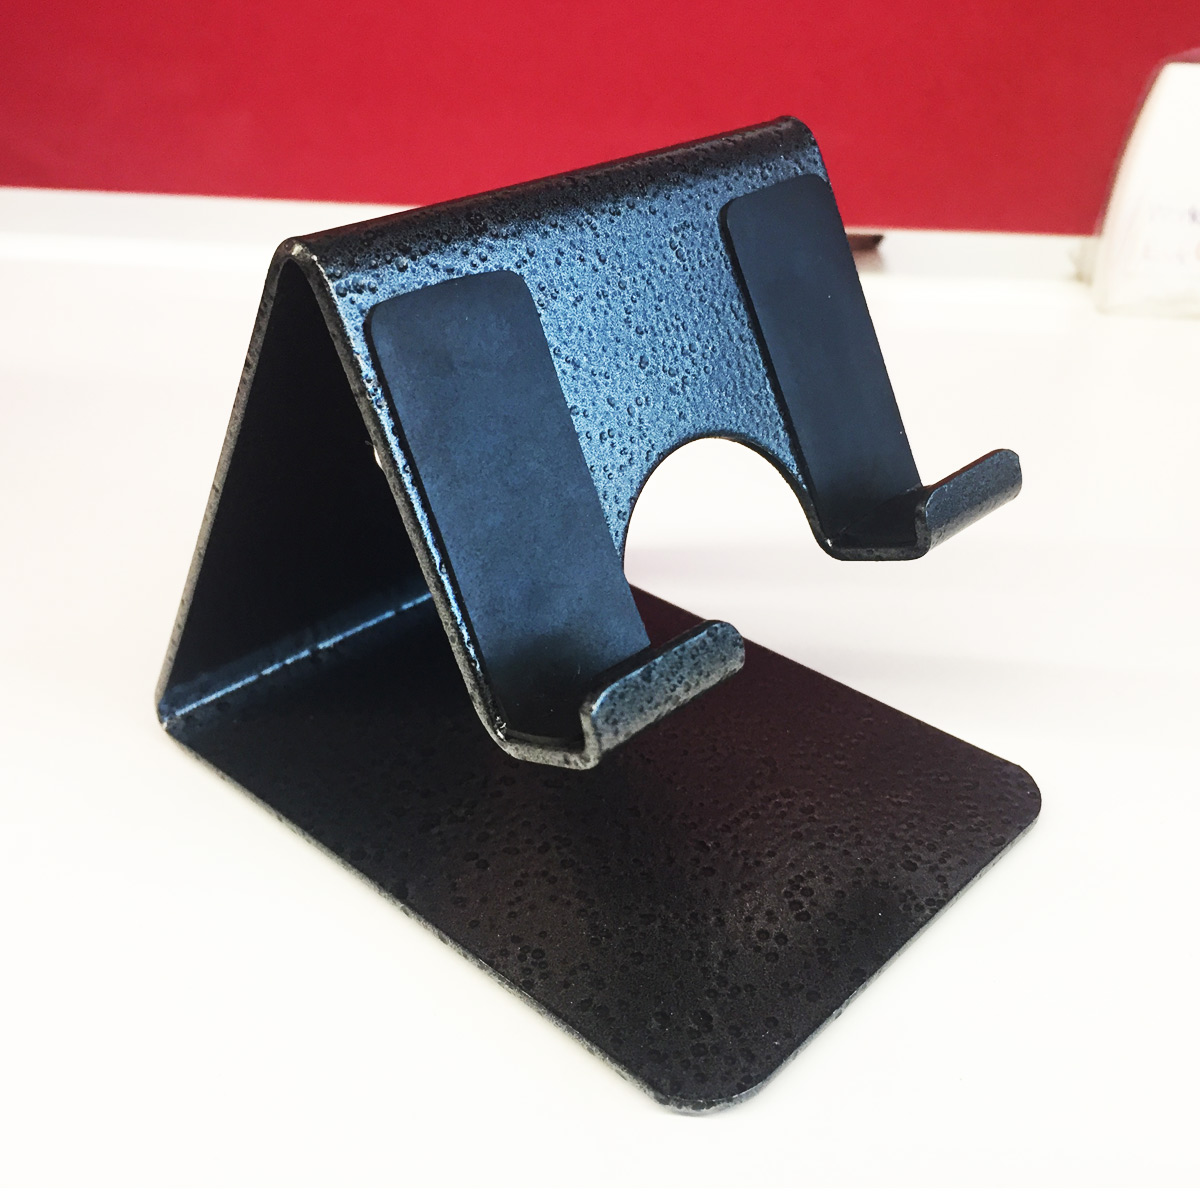 Photuprint Mobile Phone Metal Stand / Holder For Smartphones and Tablet   Antique Silver  Proudly MADE IN INDIA